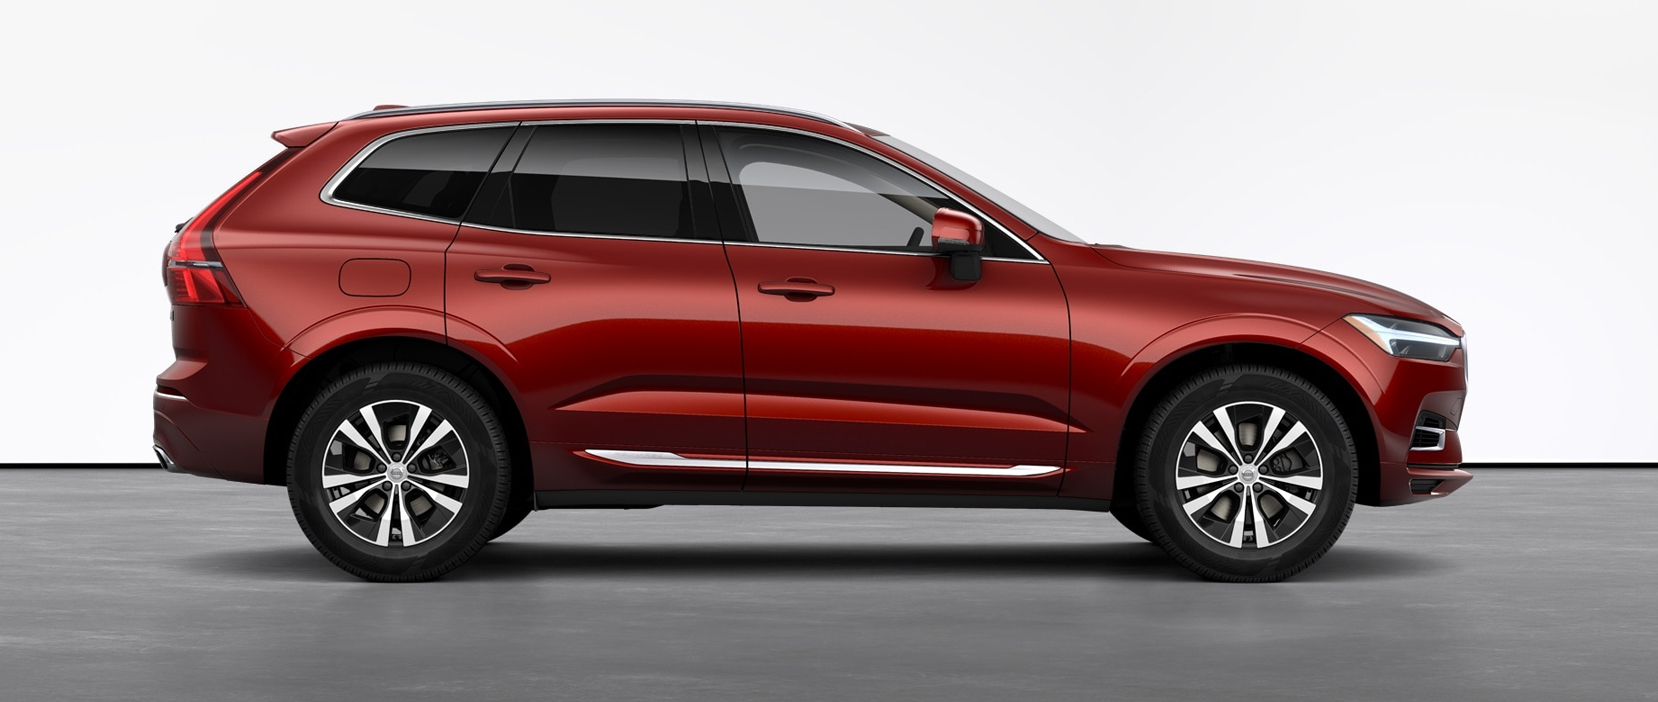 2021 Volvo XC60 Recharge Inscription Expression model